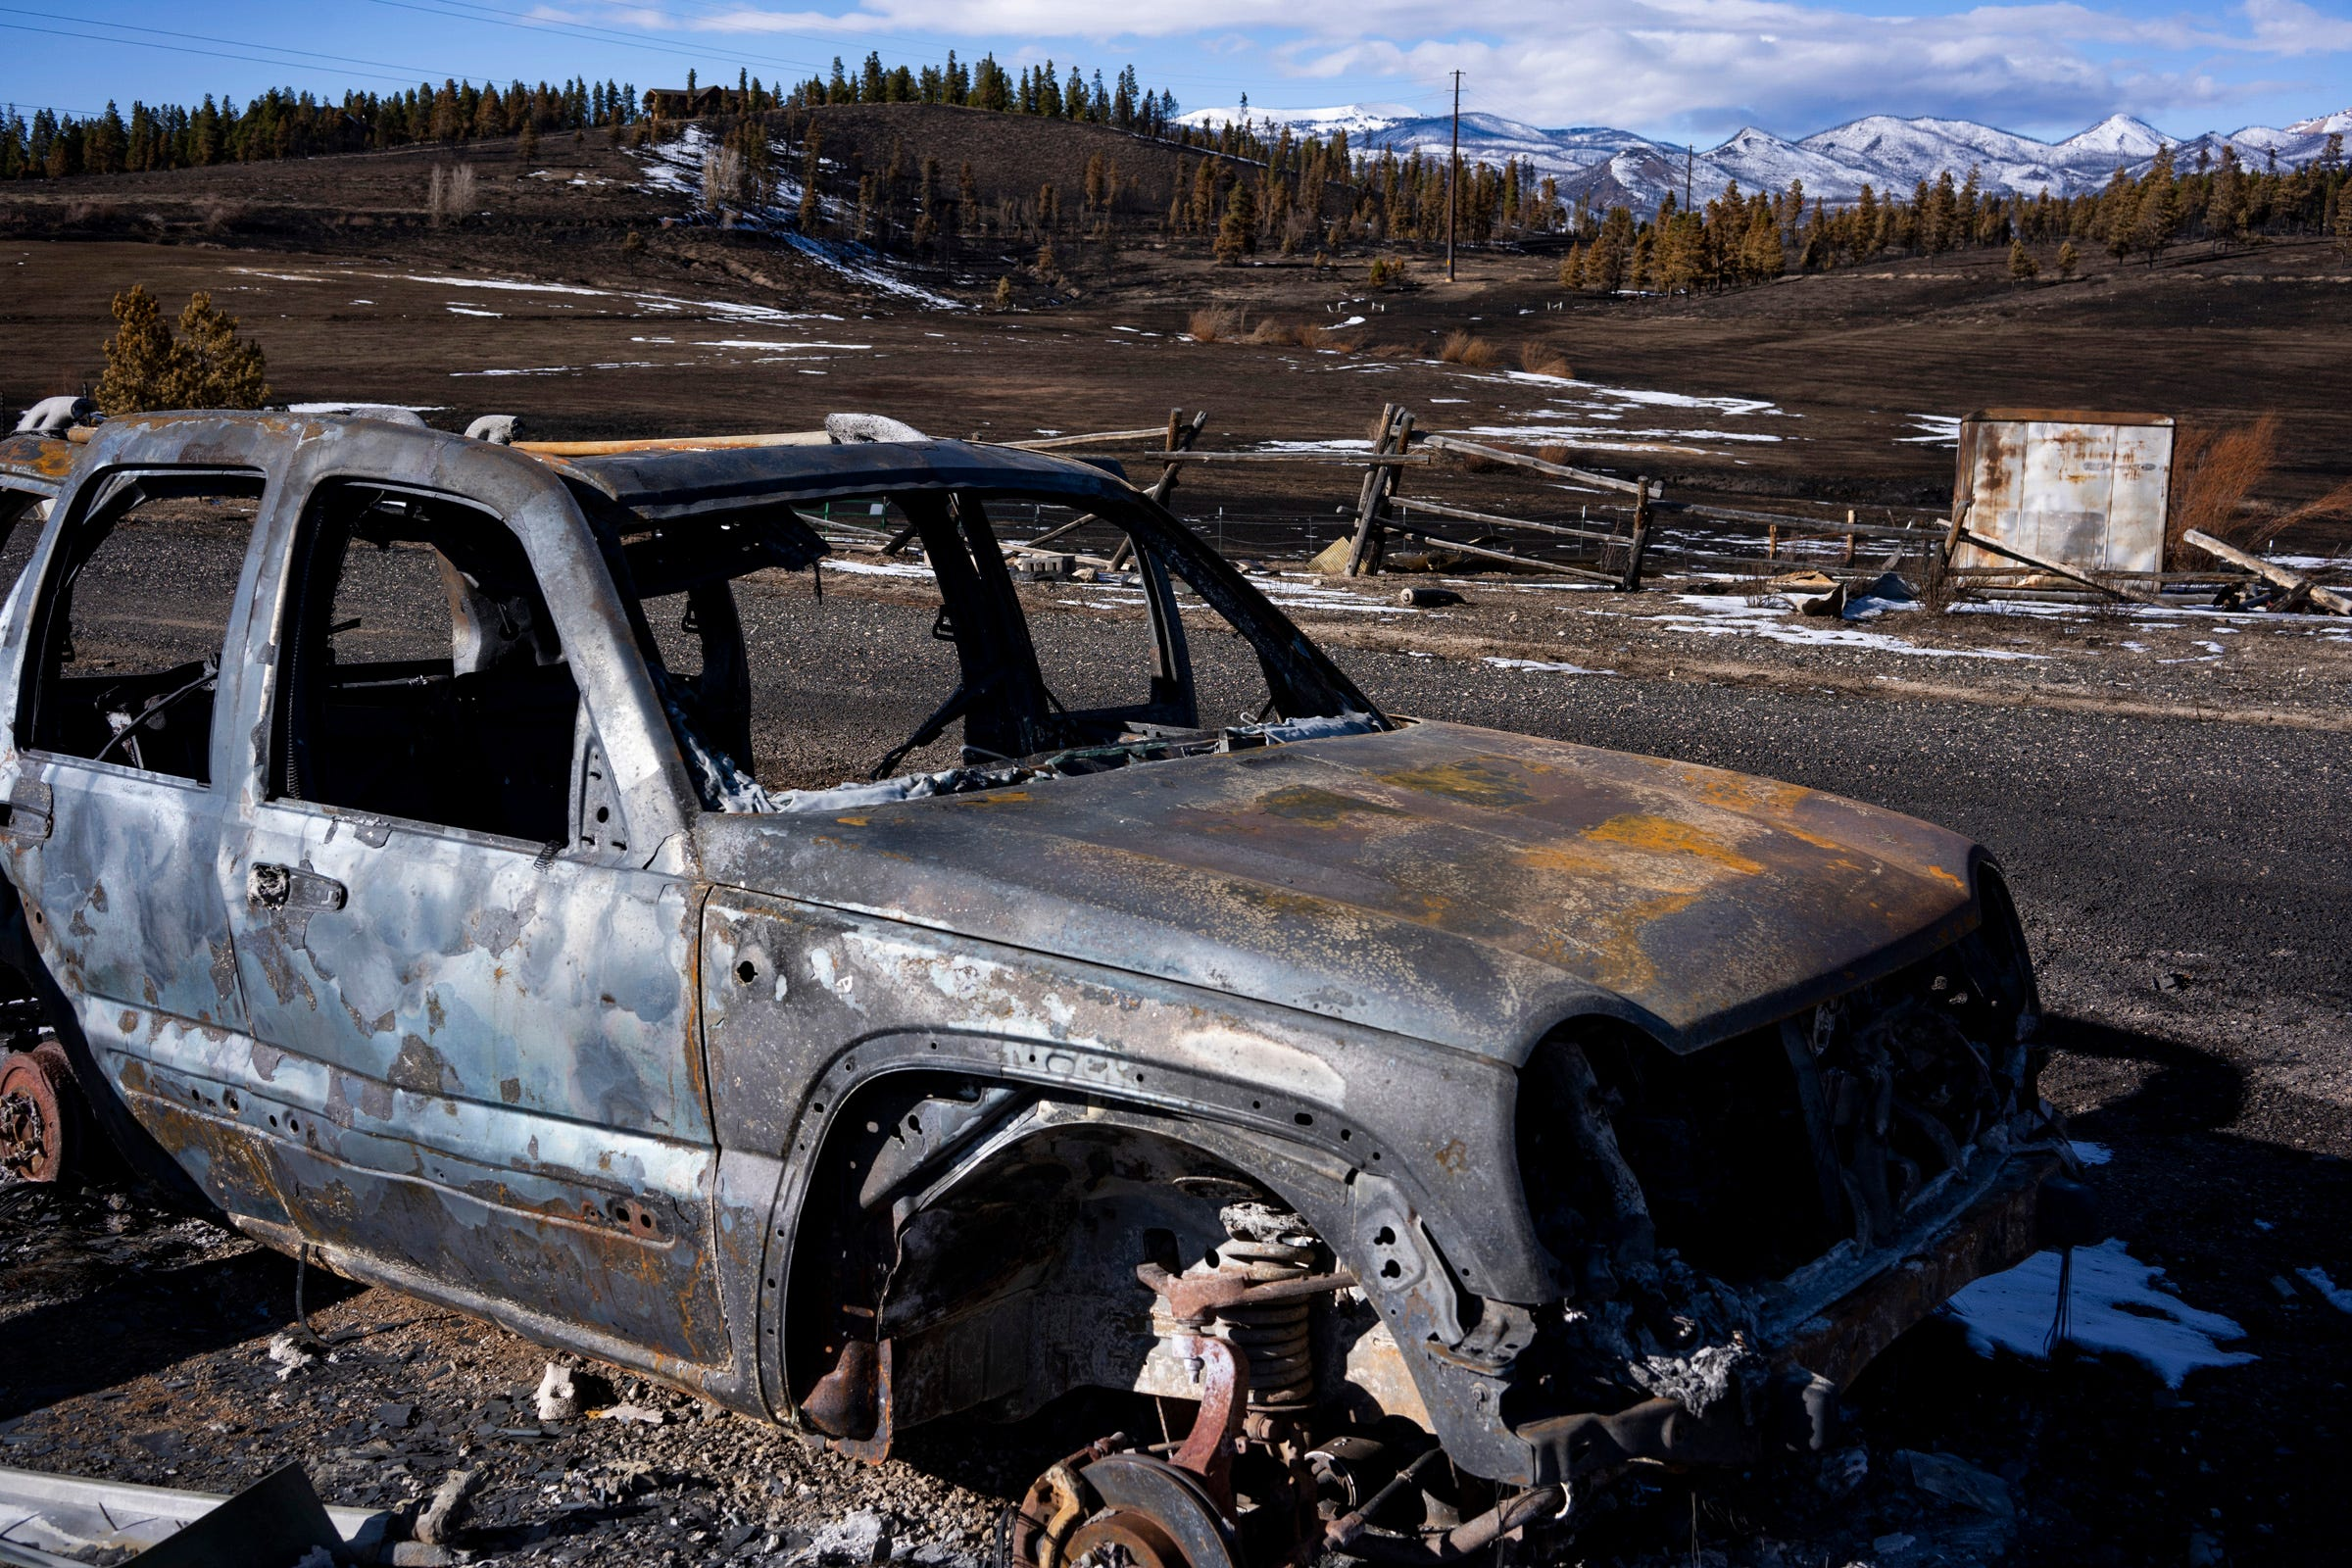 The East Troublesome Fire spread rapidly through forests in high winds and reduced homes to ashes near Granby, Colorado. The fire charred more than 193,000 acres and became the second-largest wildfire in Colorado history.